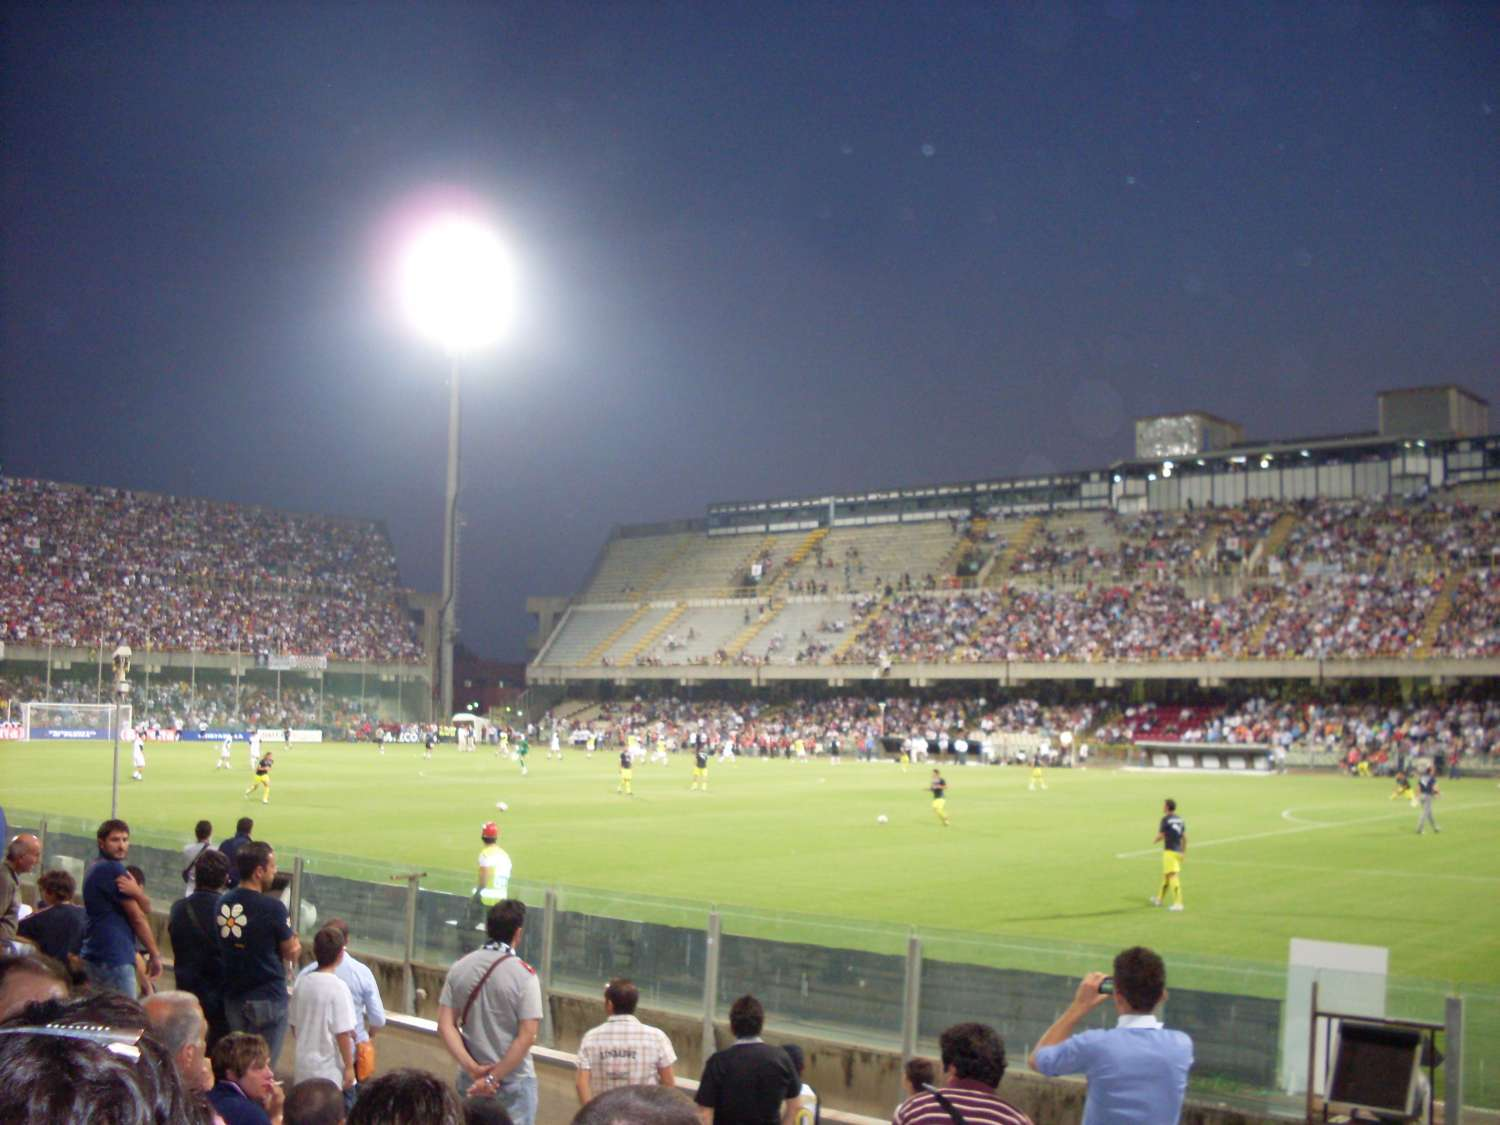 Serie B: solo un pari per la Salernitana nel monday night